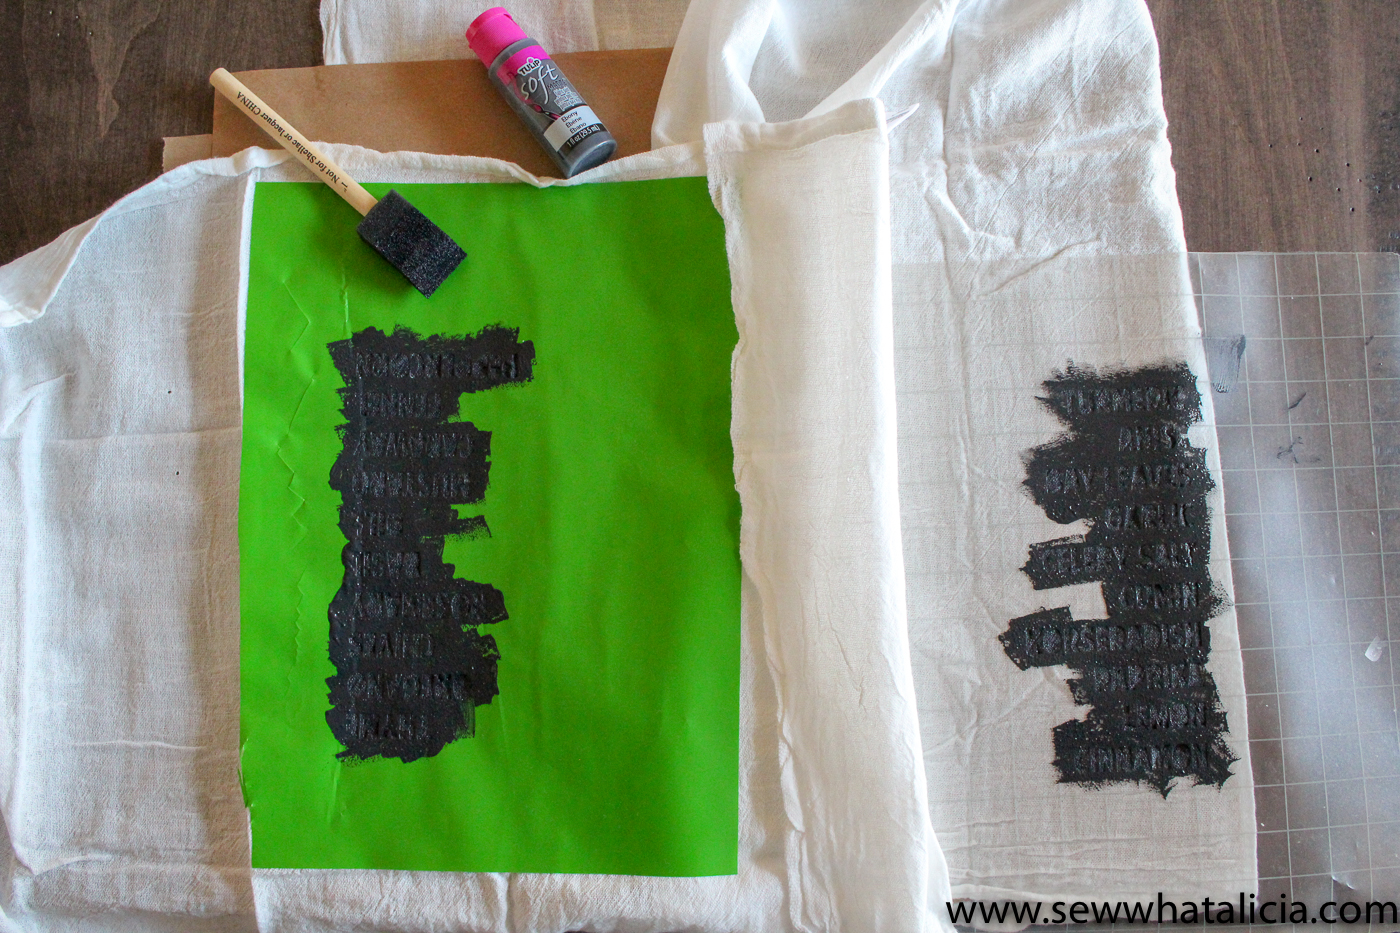 How to Make a Stencil with a Cricut - Sew What, Alicia?